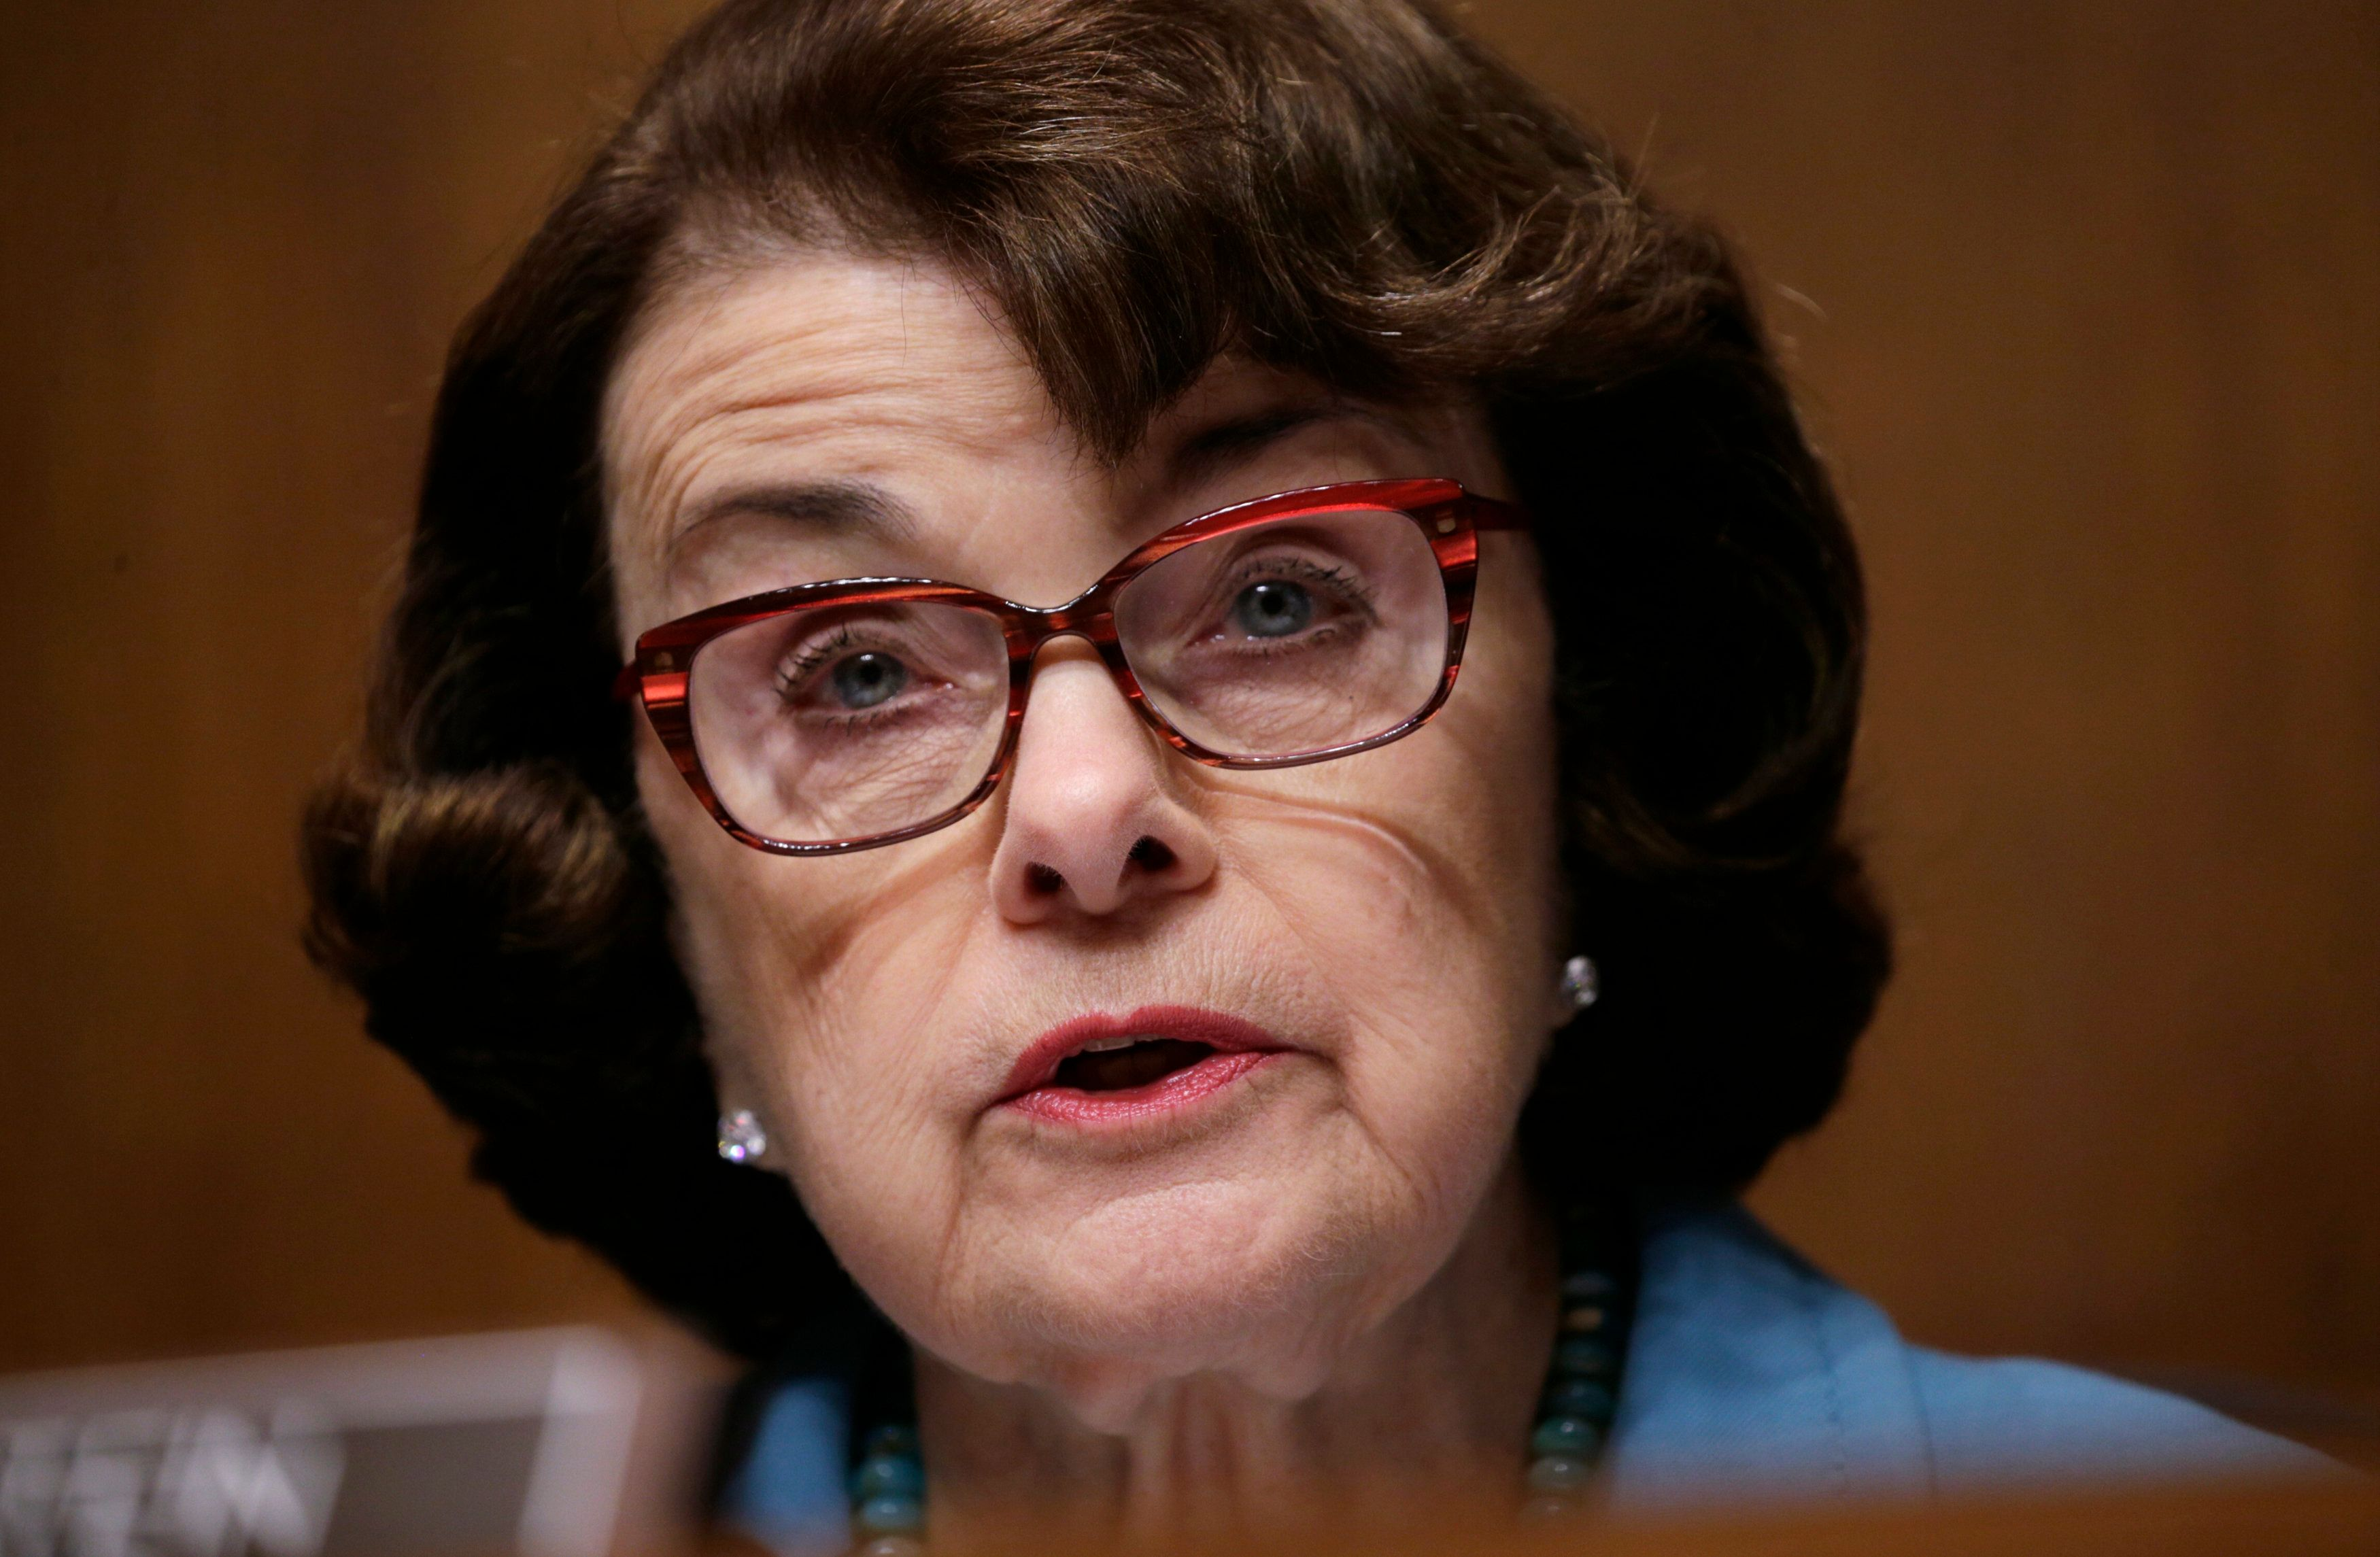 Dianne Goldman Berman Feinstein ˈ f aɪ n s t aɪ n born Dianne Emiel Goldman June 22 1933 is an American politician serving as the senior United States